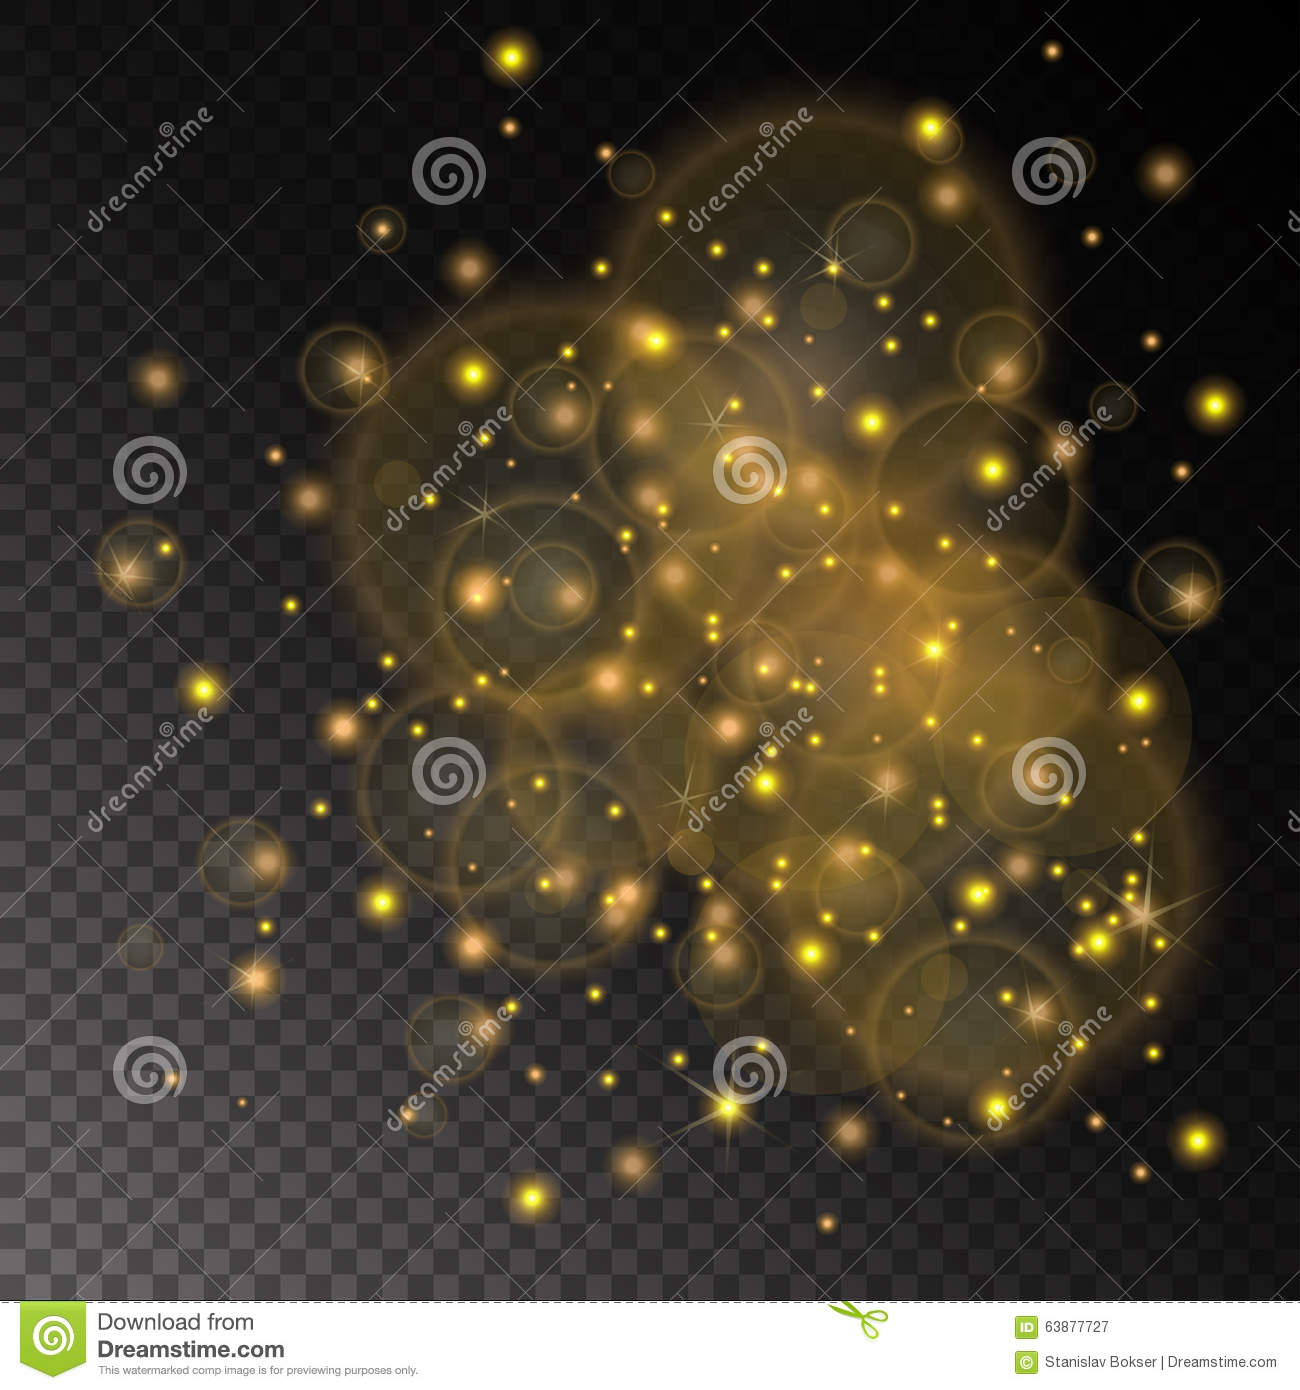 vector golden lights concept abstract on transparent chess board